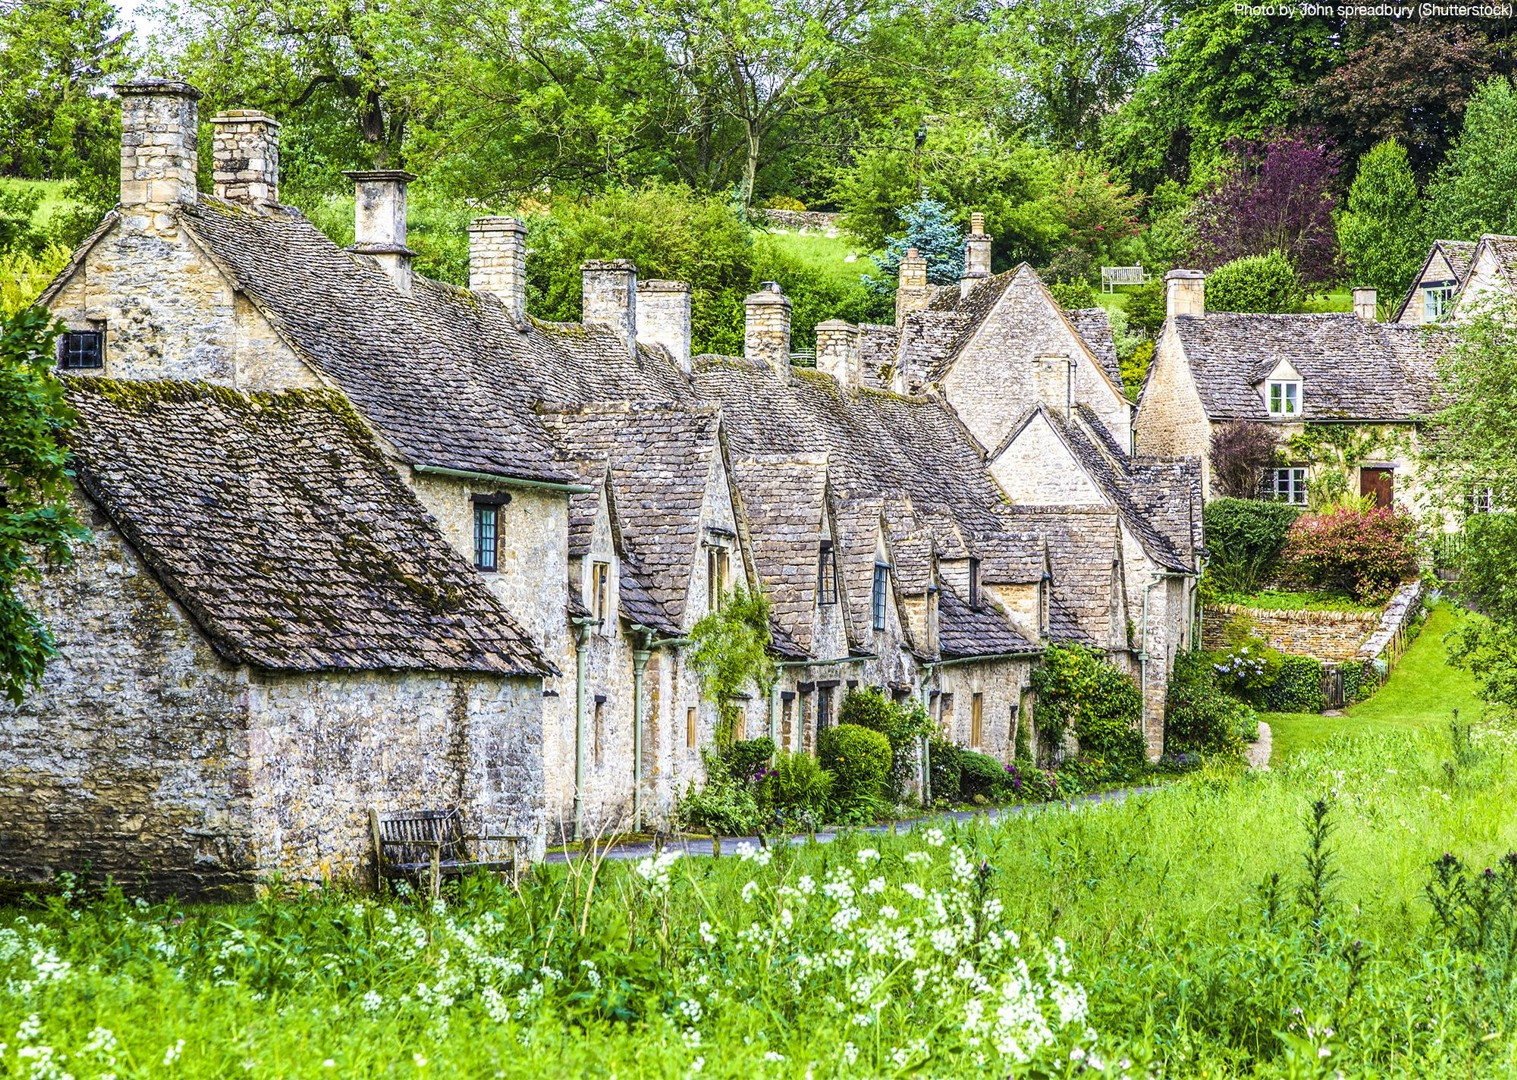 britain-cotswolds-cycling-uk-4-days-tour-bourton-on-the-water.jpg - UK - Cotswolds - Bourton-on-the-Water - Guided Leisure Cycling Holiday - Leisure Cycling